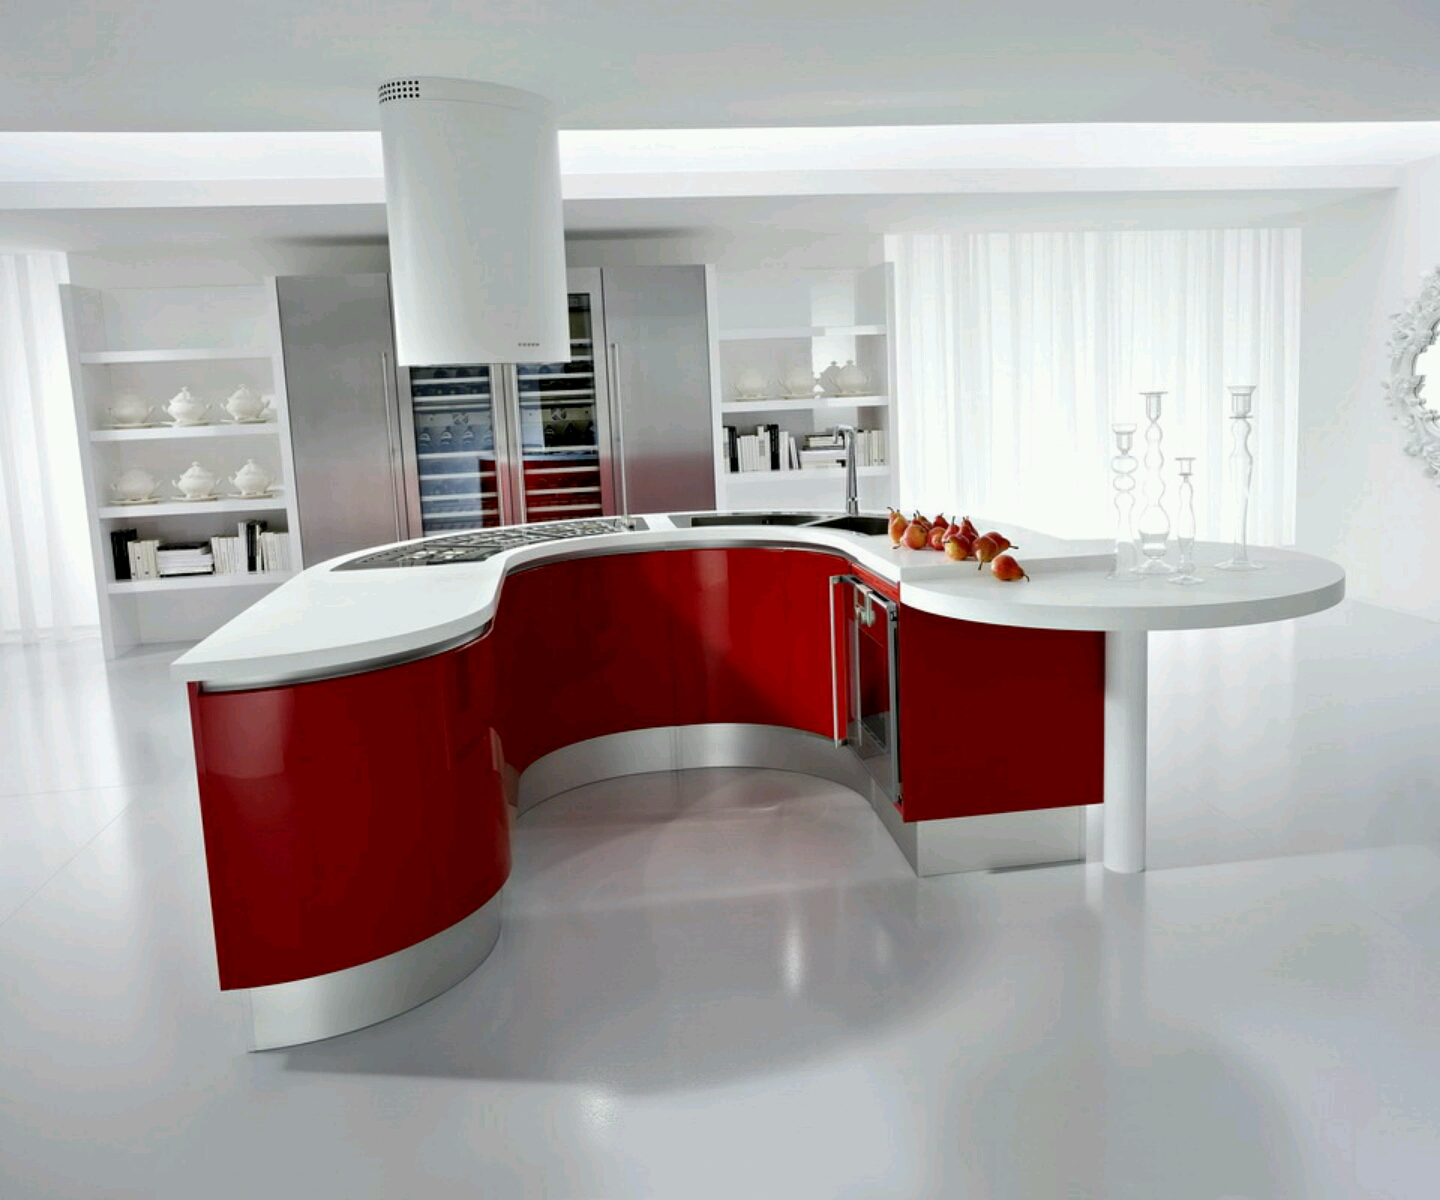 Modern kitchen cabinets designs ideas furniture gallery for Modern kitchen designs gallery